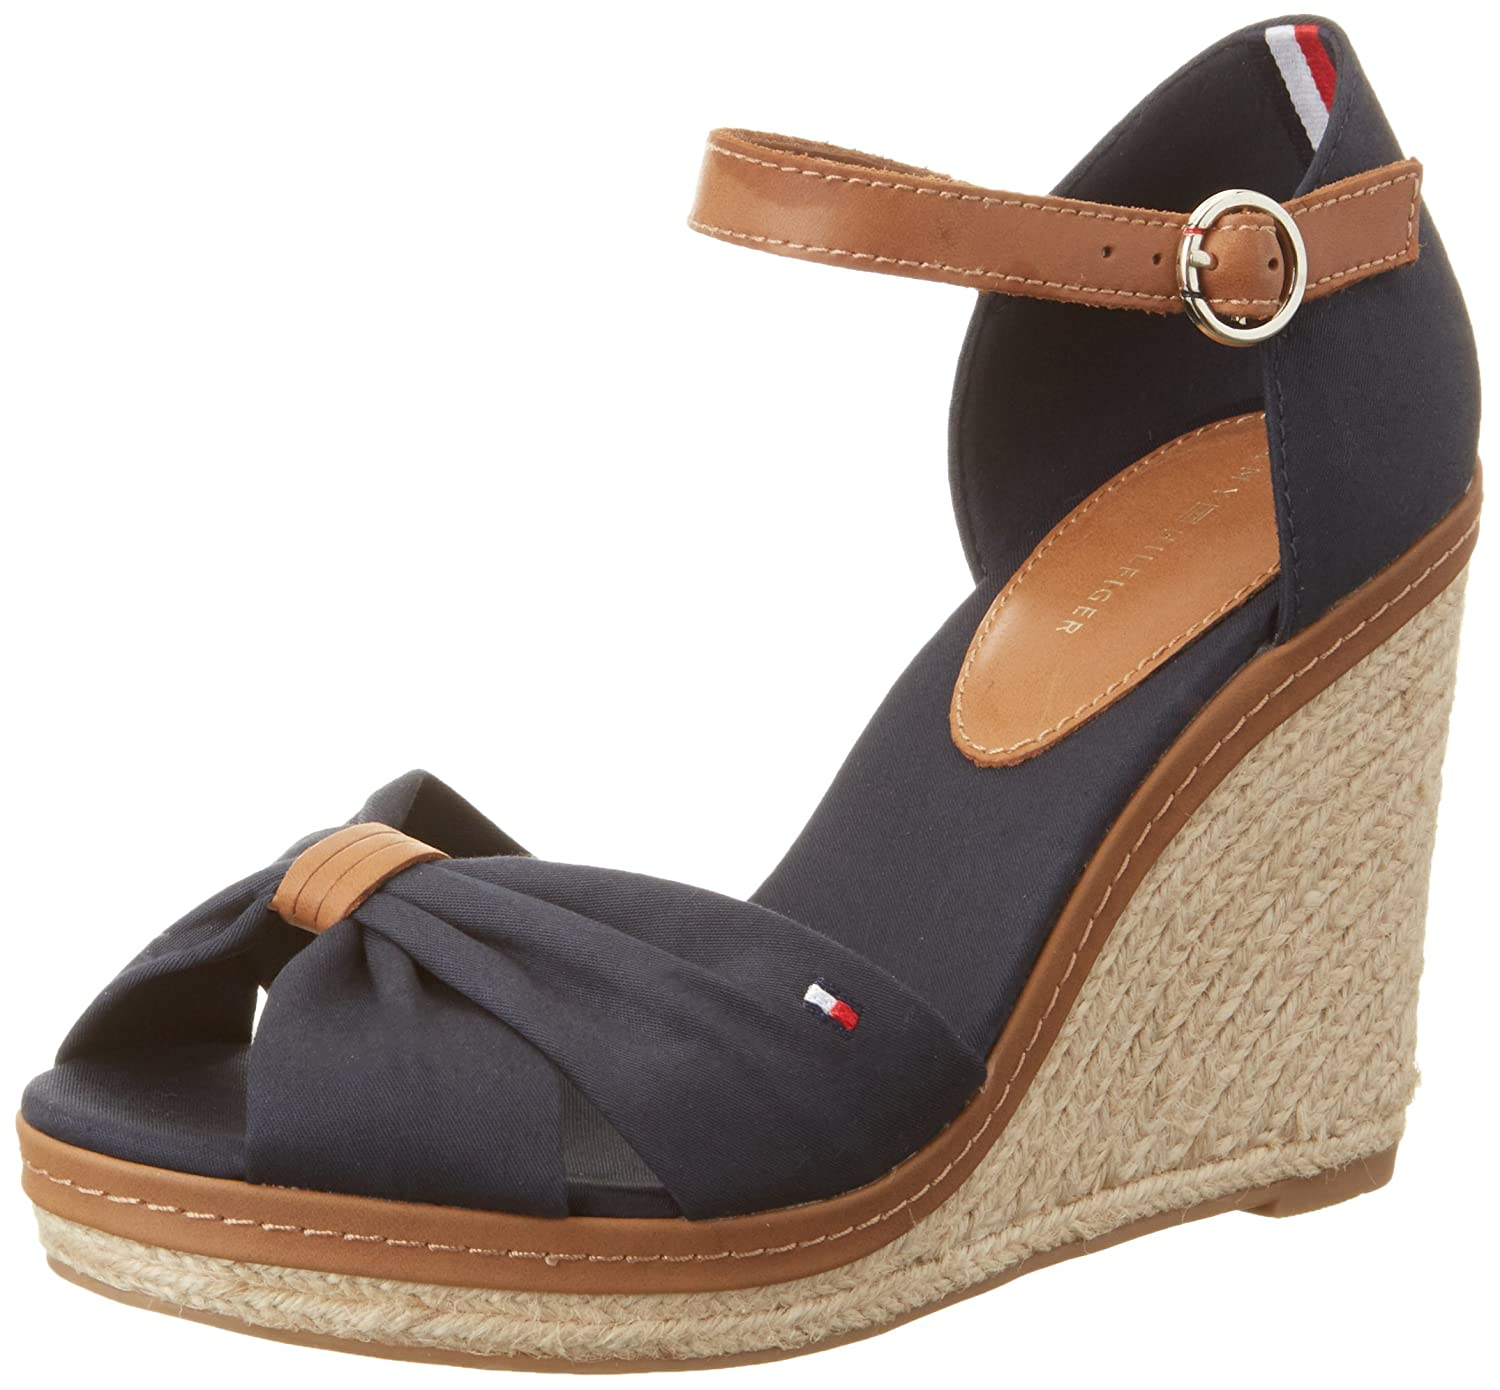 606897c91db Amazon.com: Tommy Hilfiger Iconic Elena Womens Wedge Sandals: Shoes